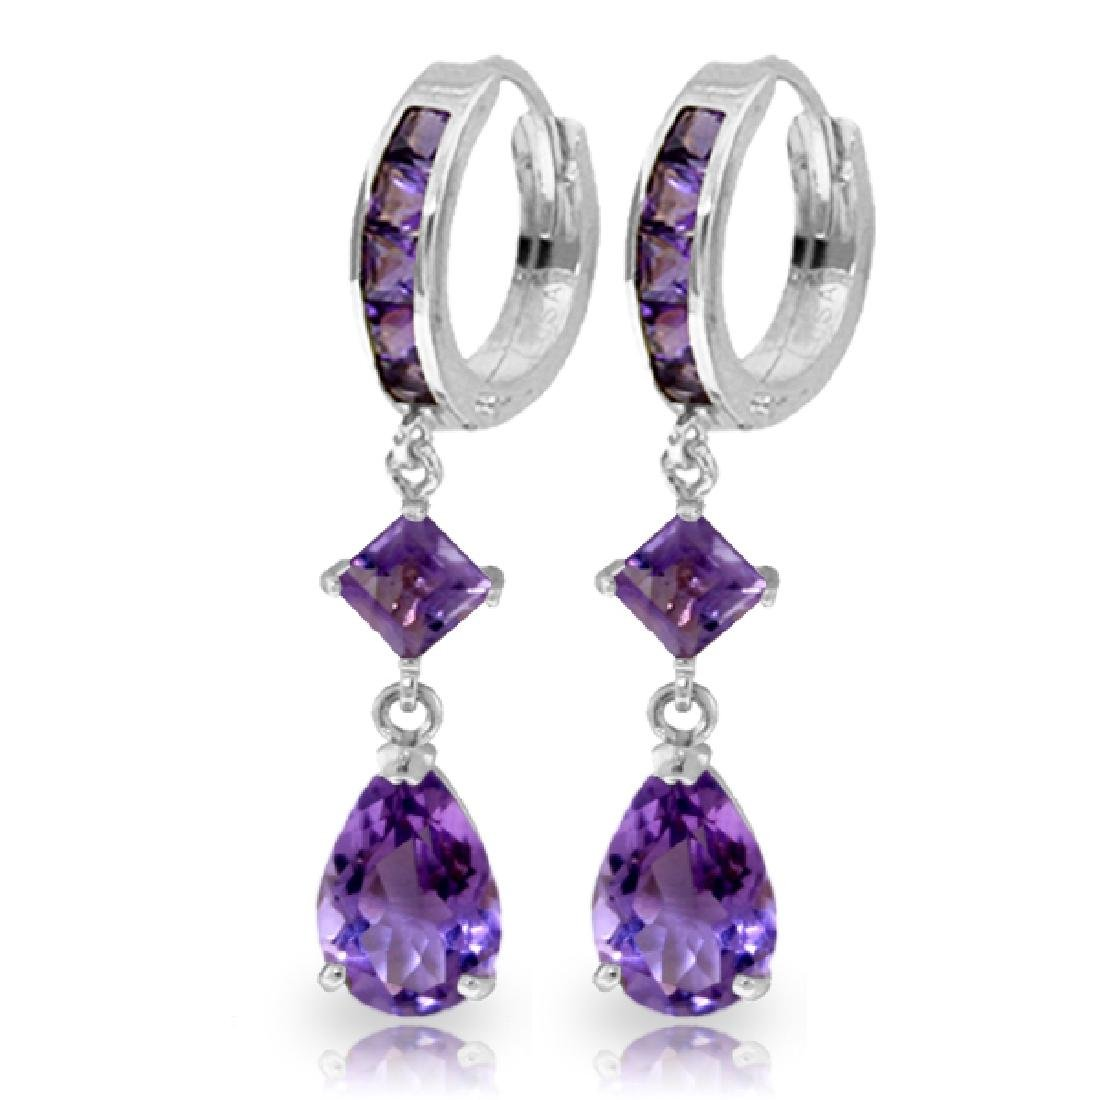 Genuine 5.62 ctw Amethyst Earrings Jewelry 14KT White